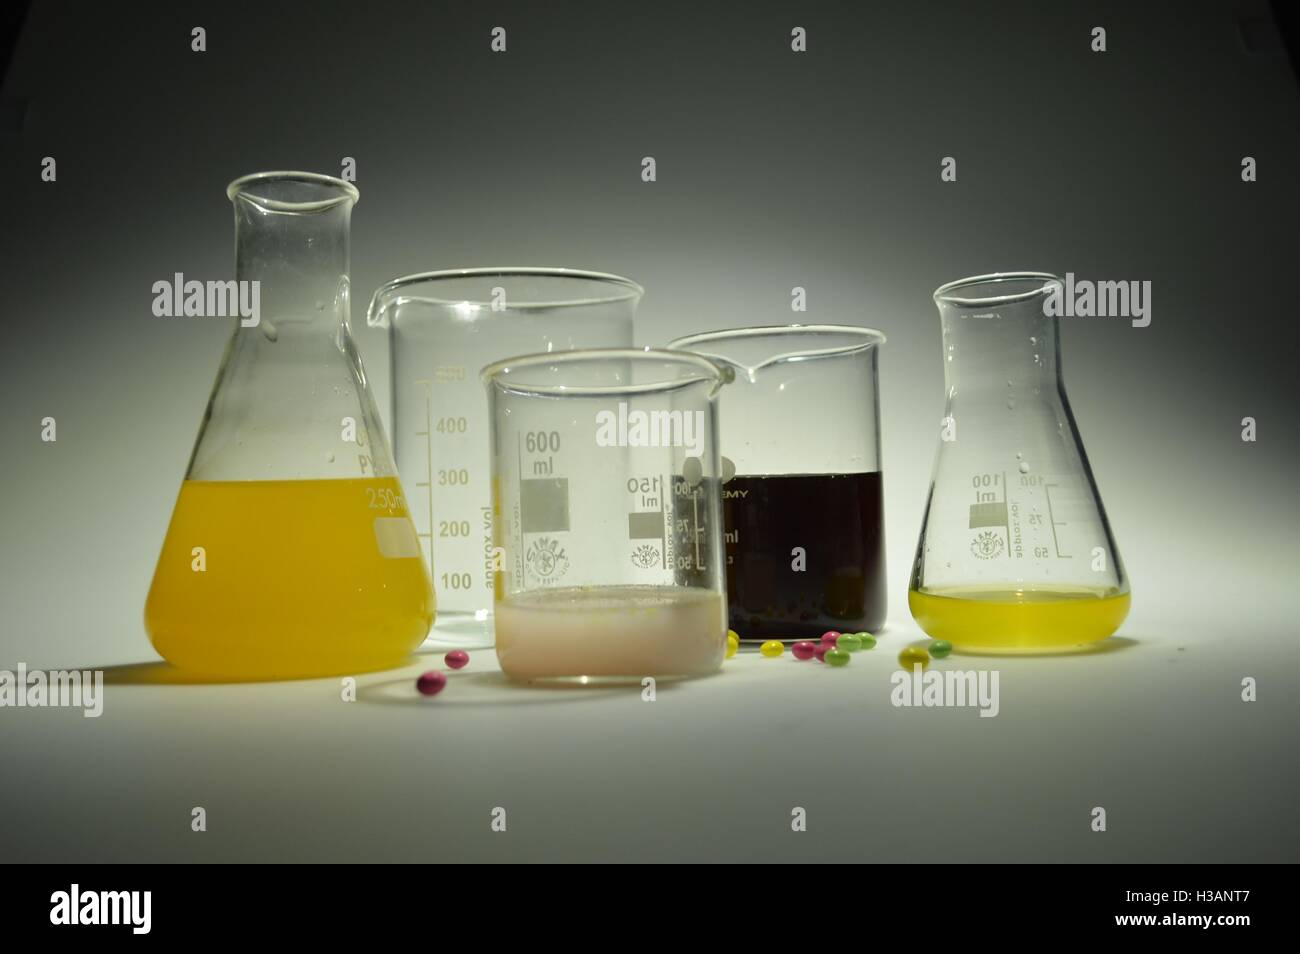 Science lab with colourful liquid chemicals in beakers, flasks and jugs. Stock Photo